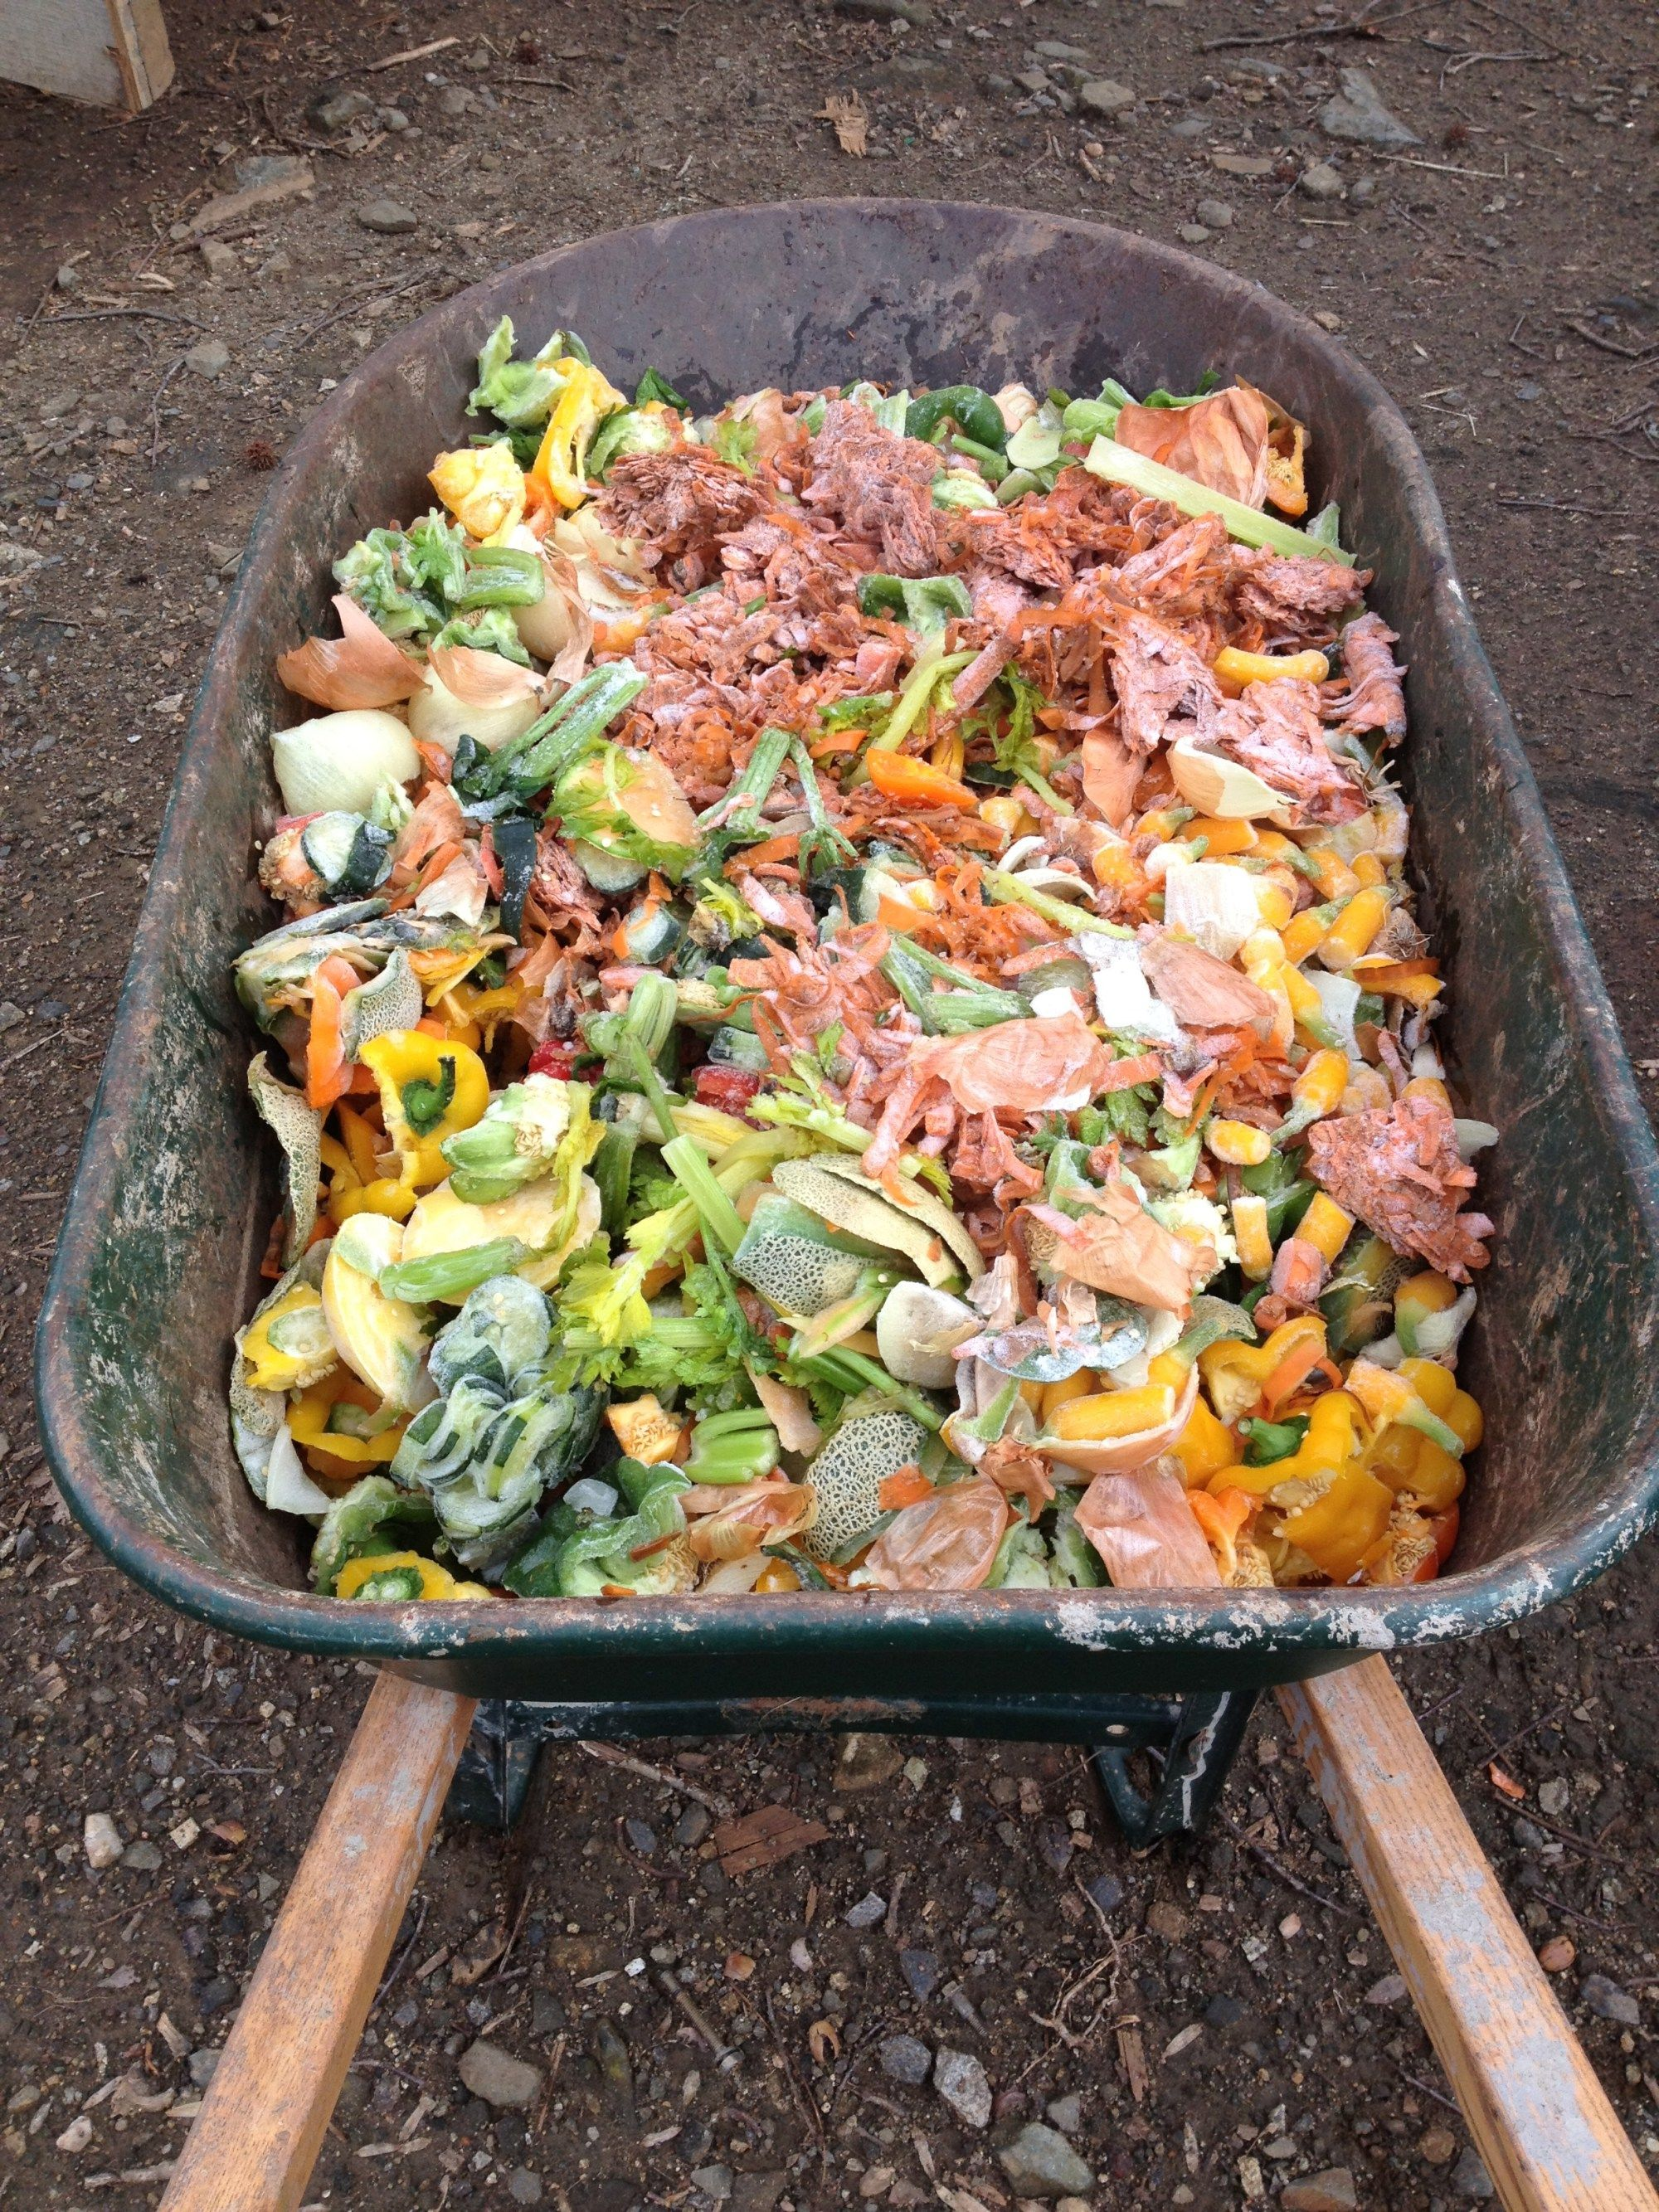 Where To Get More Food Scraps To Feed Your Composting